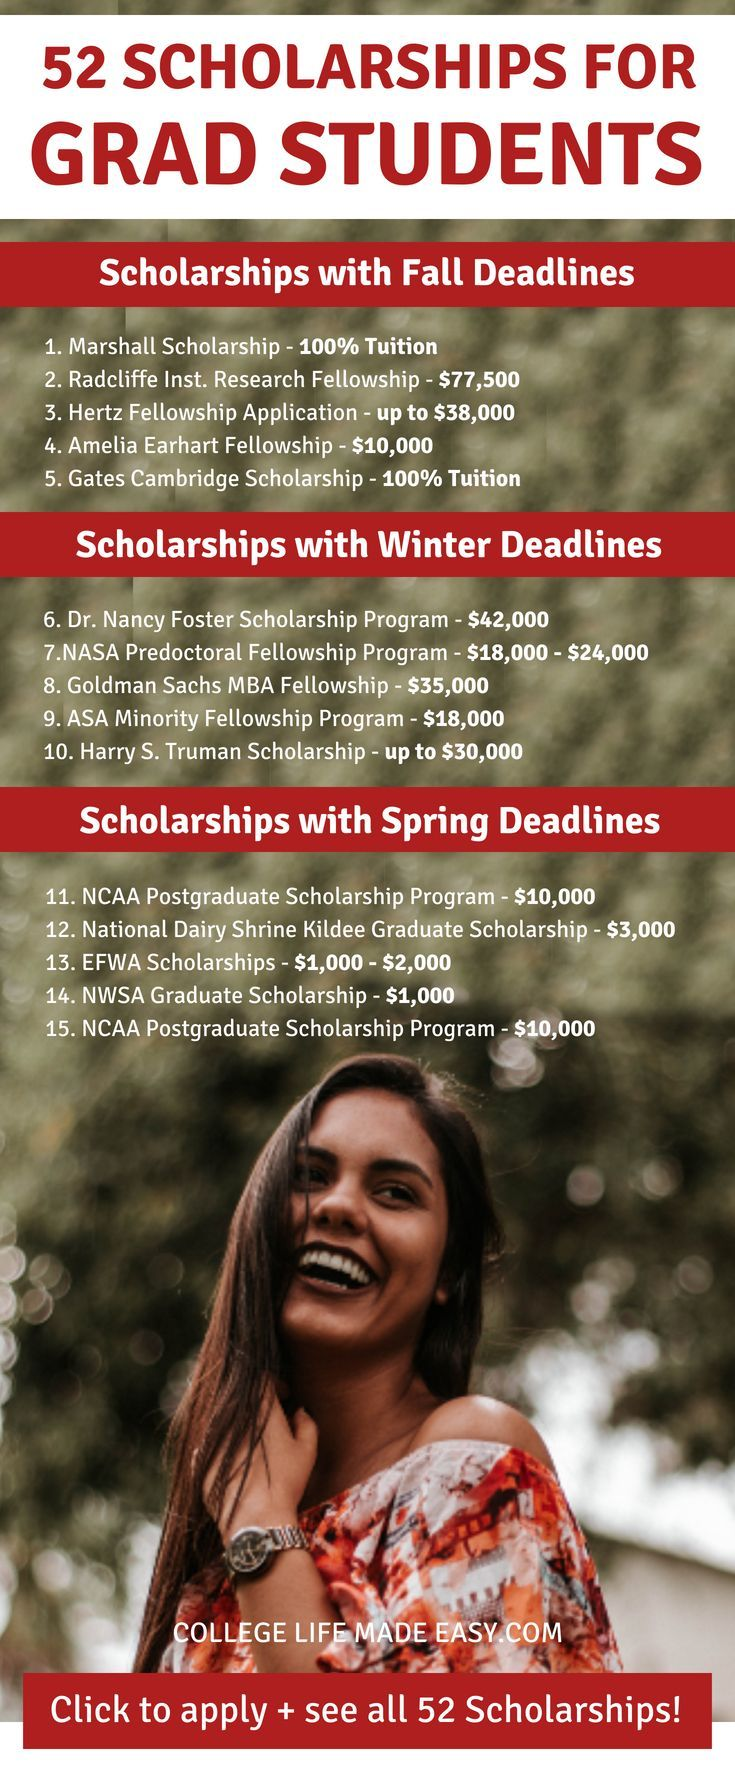 52 Scholarships For Graduate Students To Cash In On In 2018